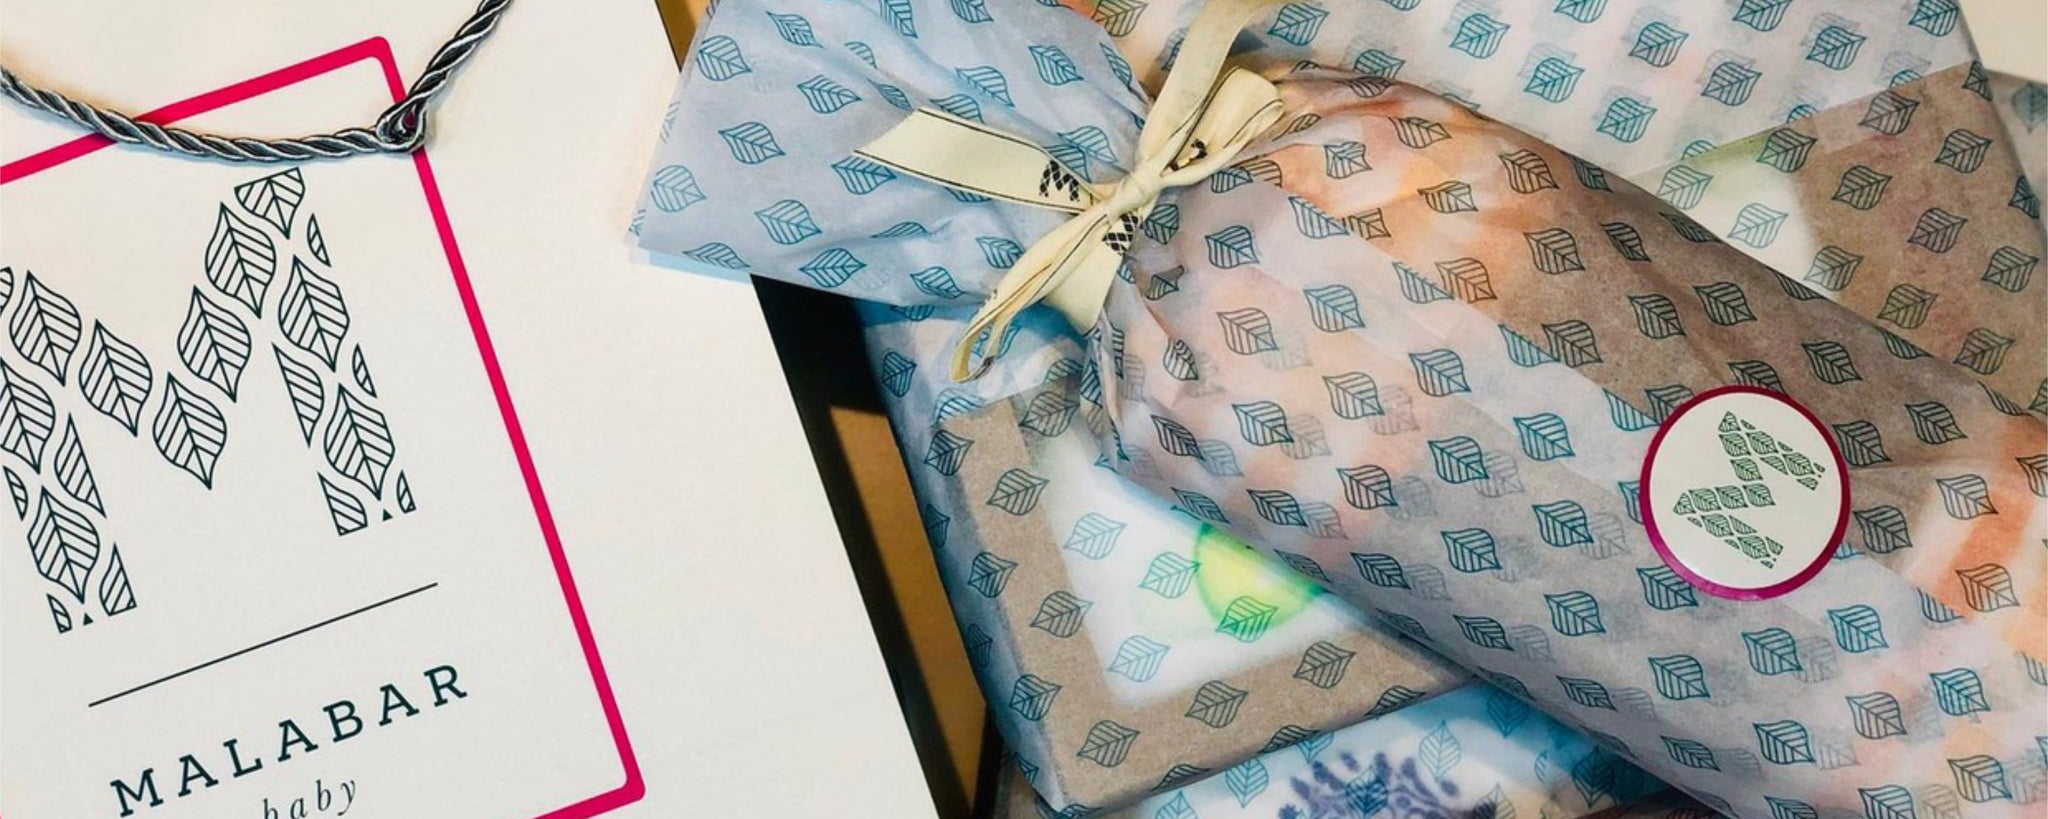 Newborn Gift Sets For Baby Showers 100 Day Celebrations And 1st Birthday Milestones All Come Ready In Muslin Pouches Signature Wrapping